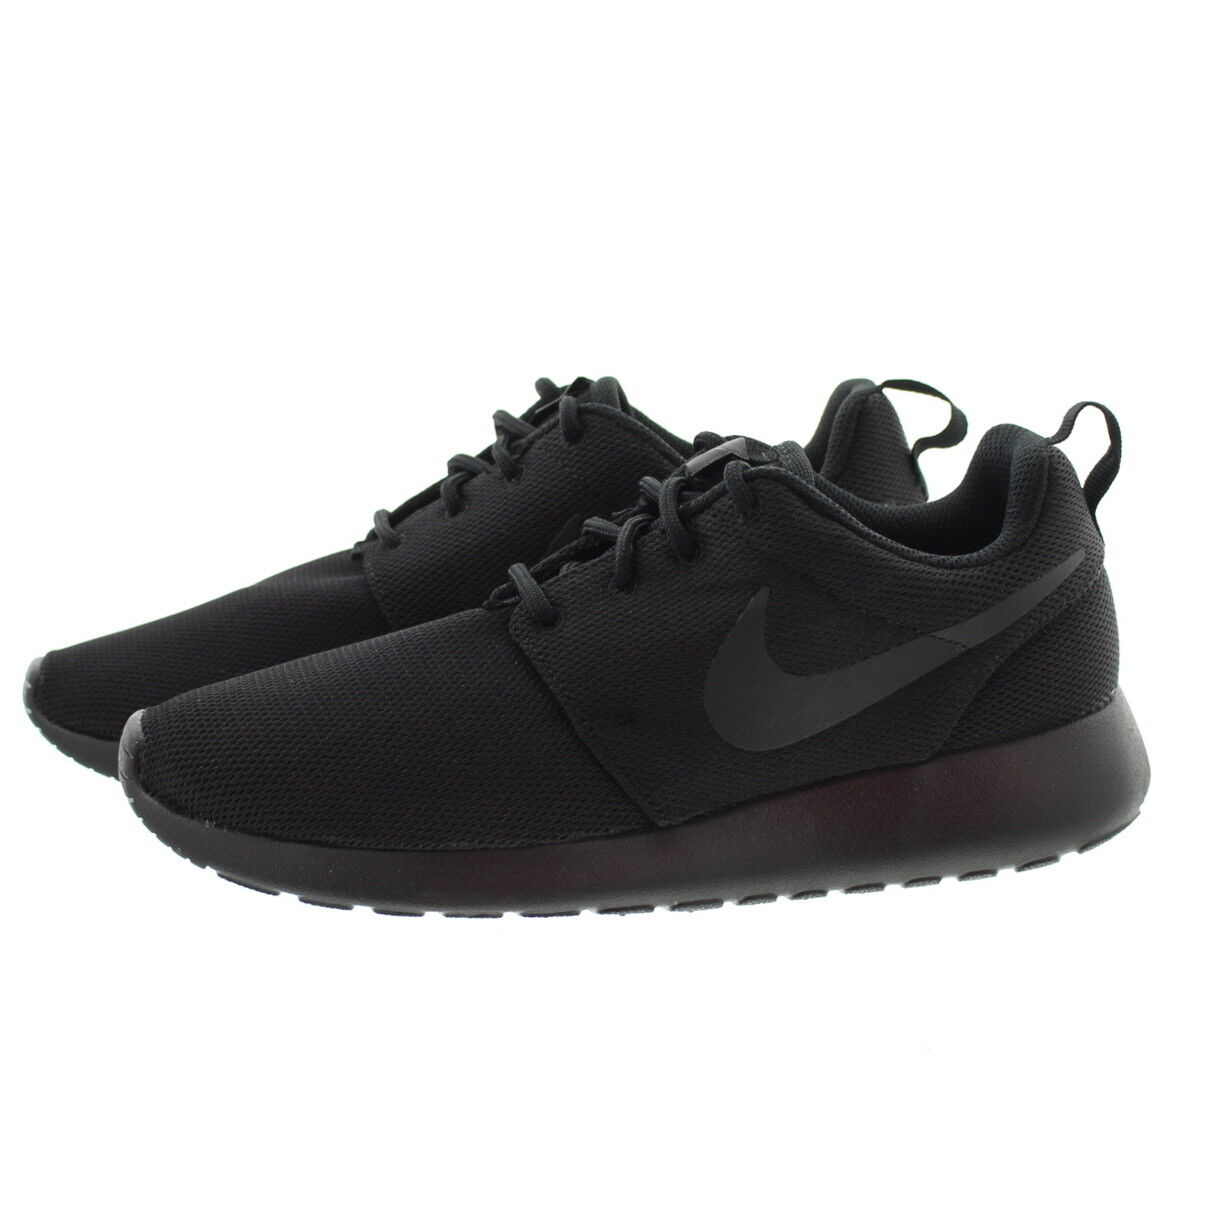 Nike 844994 Womens Roshe One Low Low Low Top Running Training shoes Sneakers b7a526